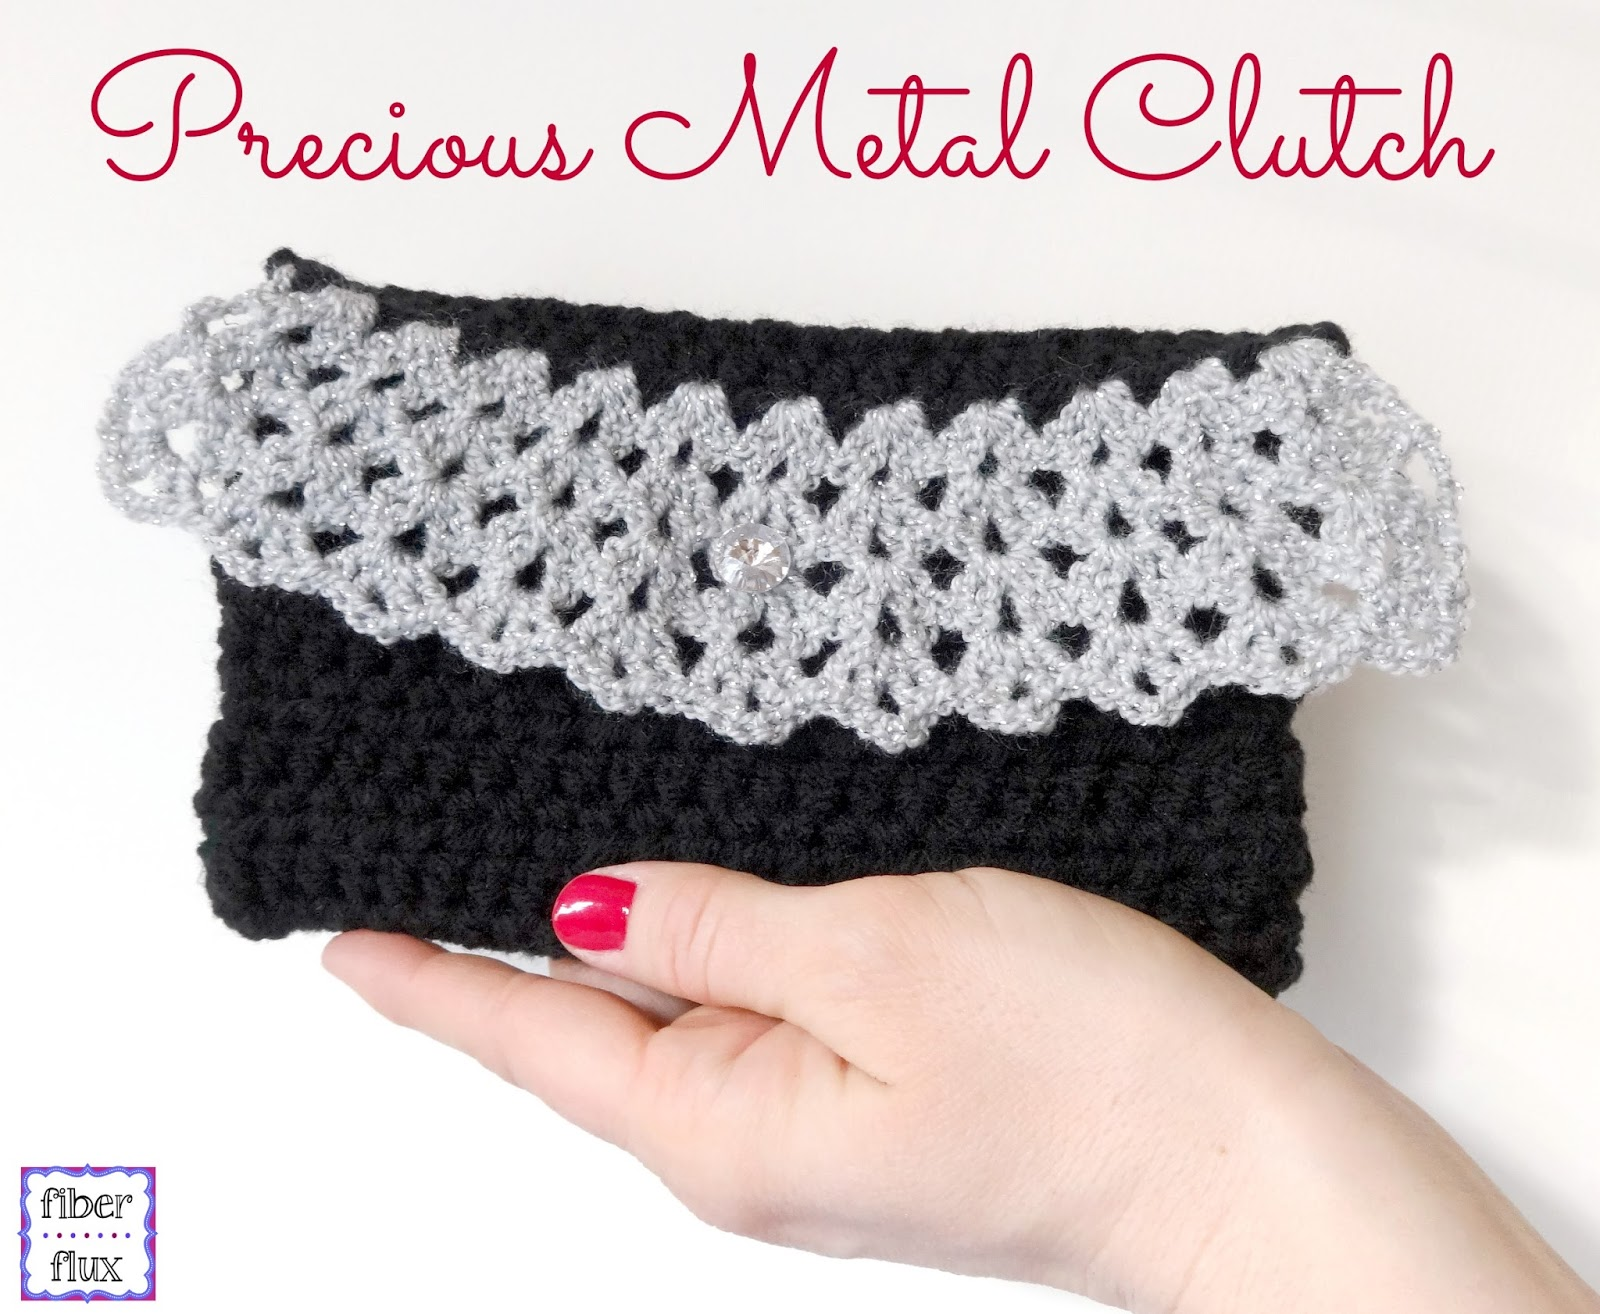 Fiber Flux: Free Crochet Pattern...Precious Metal Clutch!